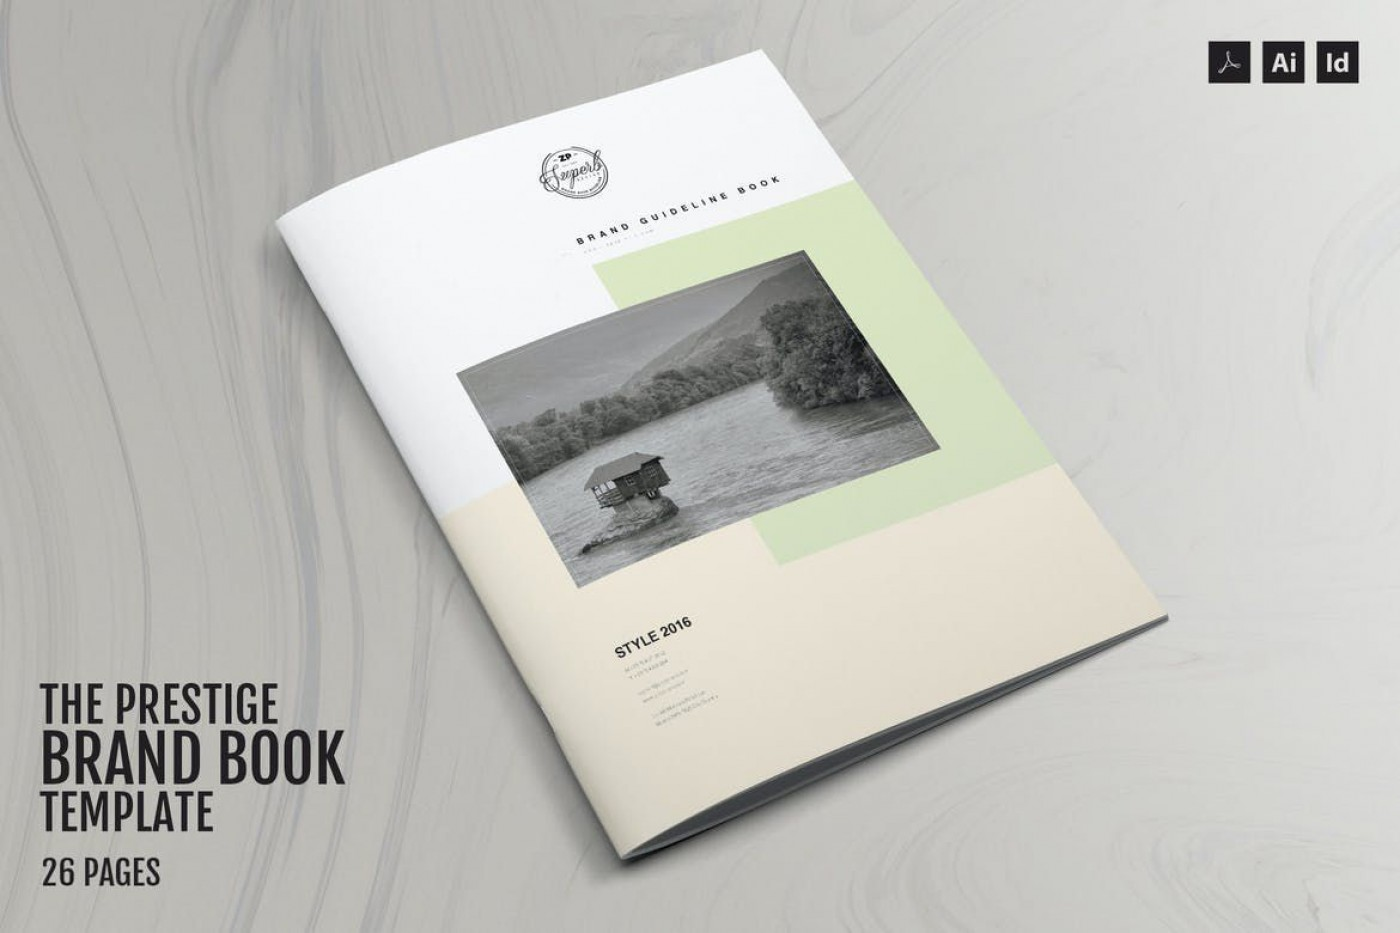 008 Frightening Free Indesign Book Template Download Image  Cs6 Adobe1400